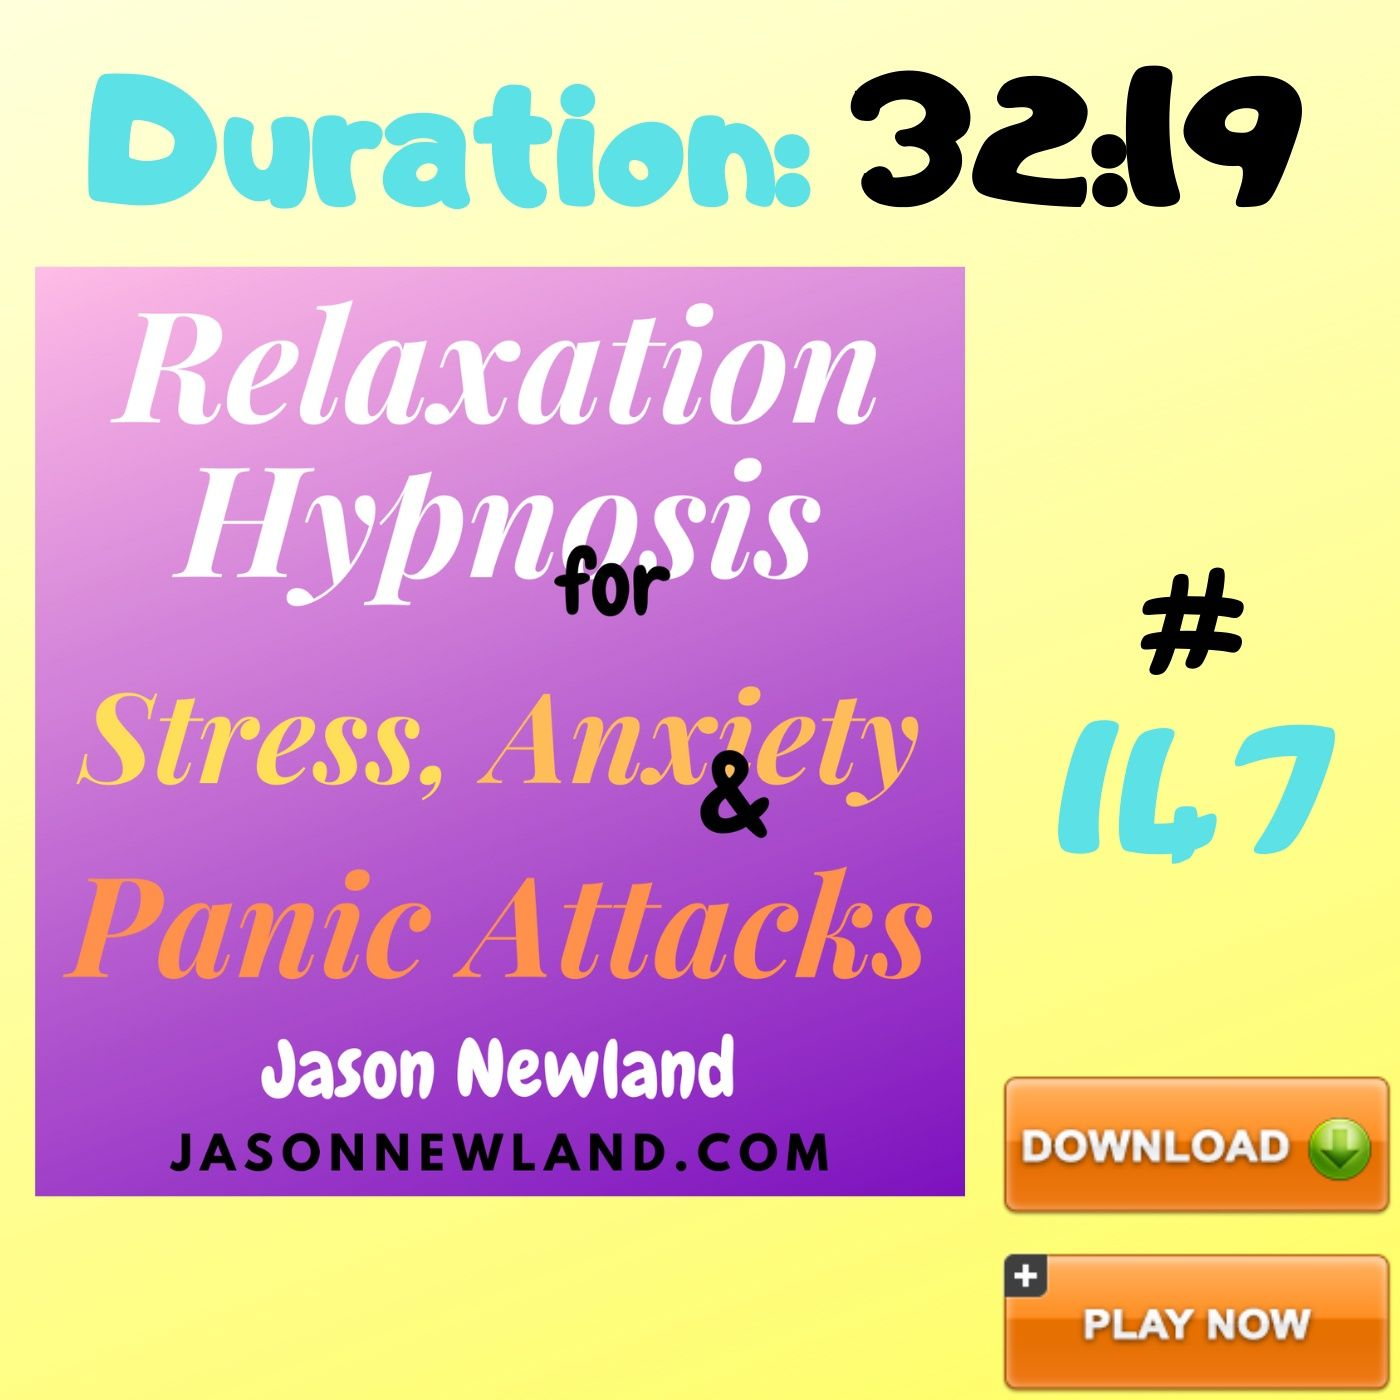 "#147 Relaxation Hypnosis for Stress, Anxiety & Panic Attacks - ""FOCUS ON FEELING RELAXED"" (Jason Newland) (4th June 2020)"